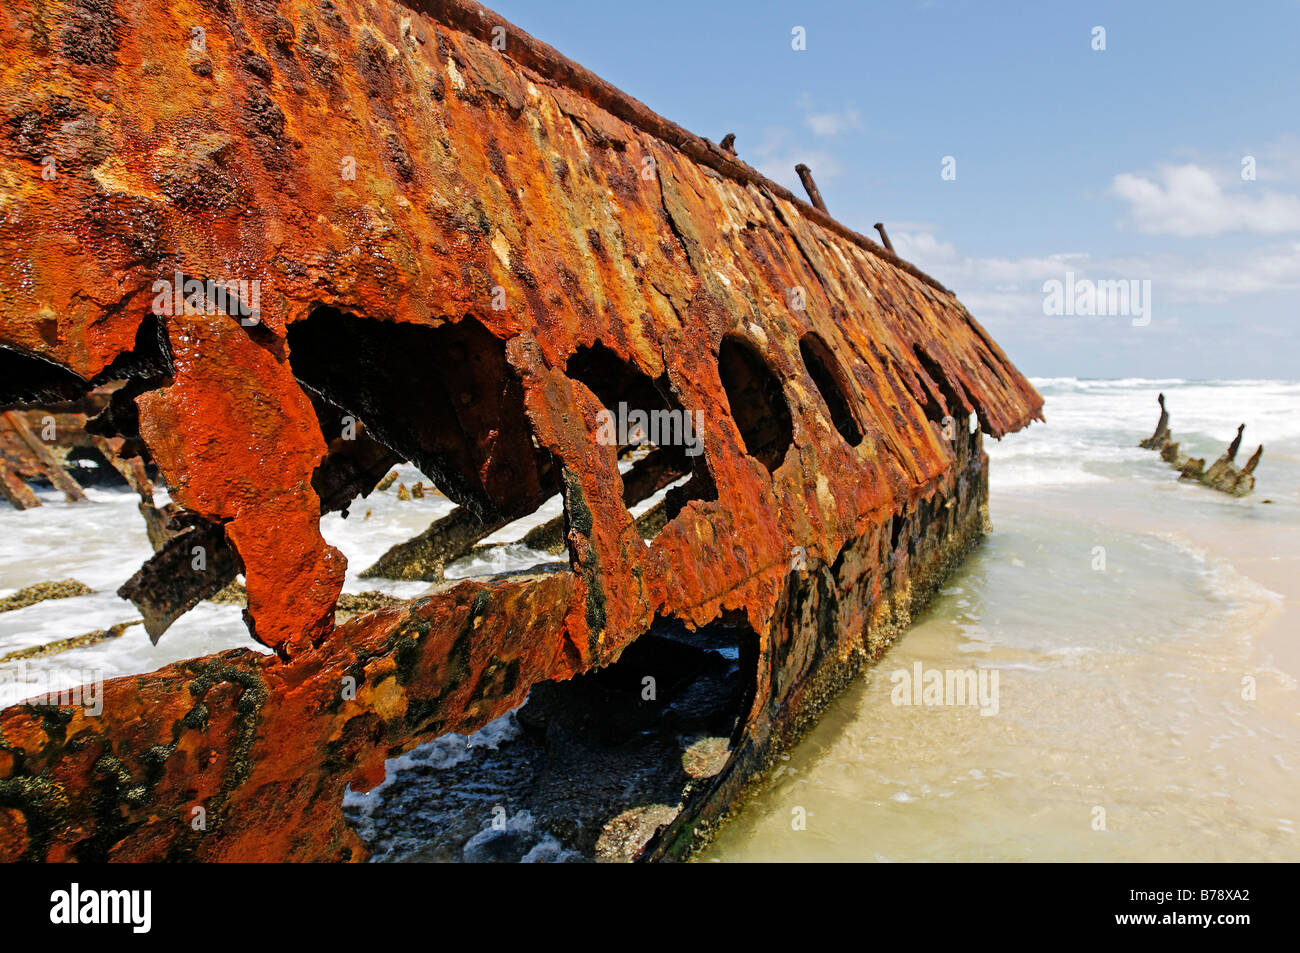 Wreckage of the Maheno on the 75-Mile Beach, Fraser Island, Queensland, Australia - Stock Image